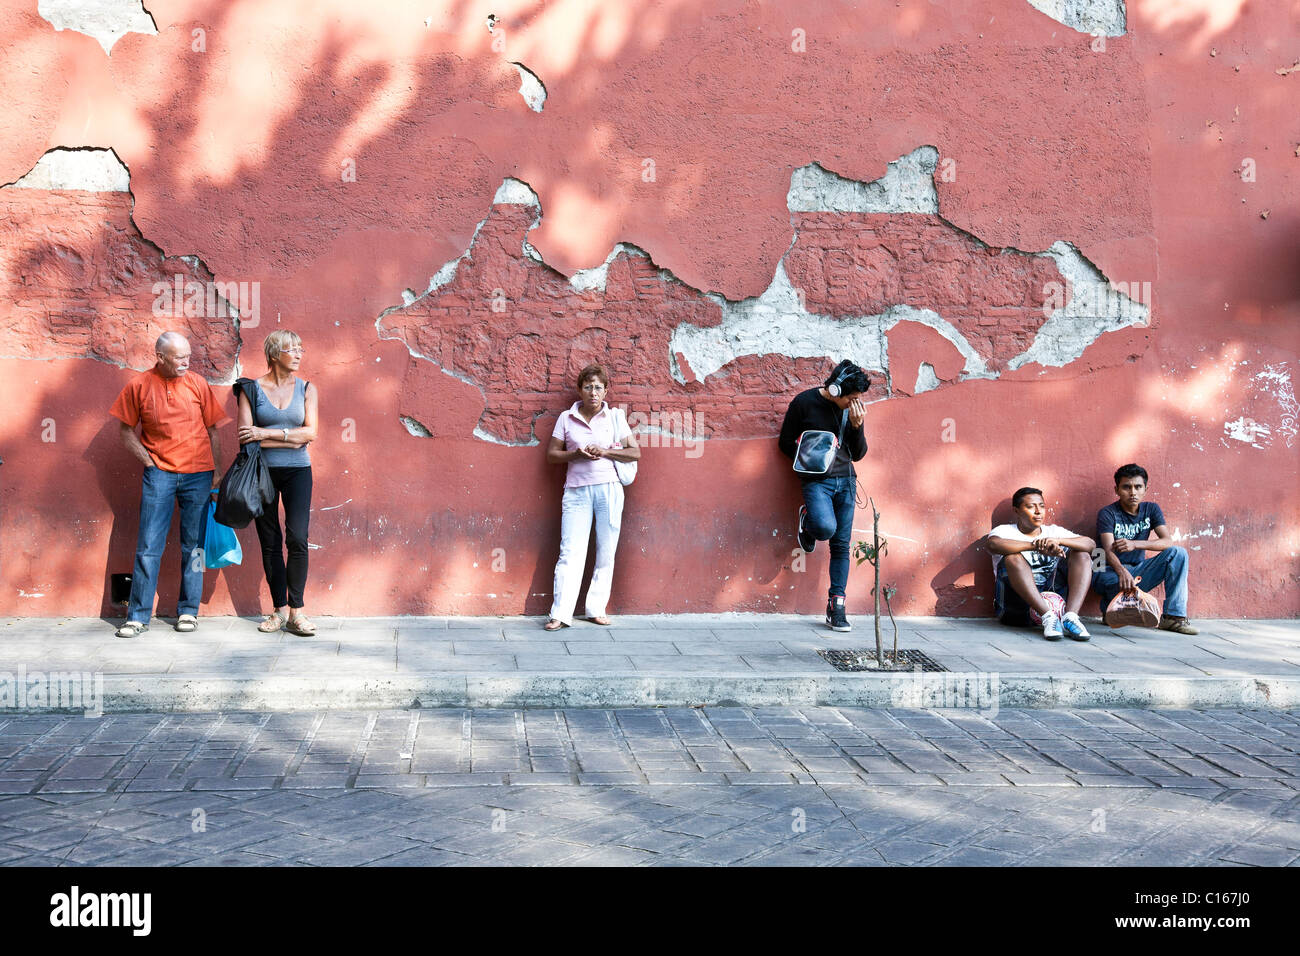 diverse group of people wait at bus stop against marvelous old crumbling red plaster wall in Oaxaca Mexico - Stock Image